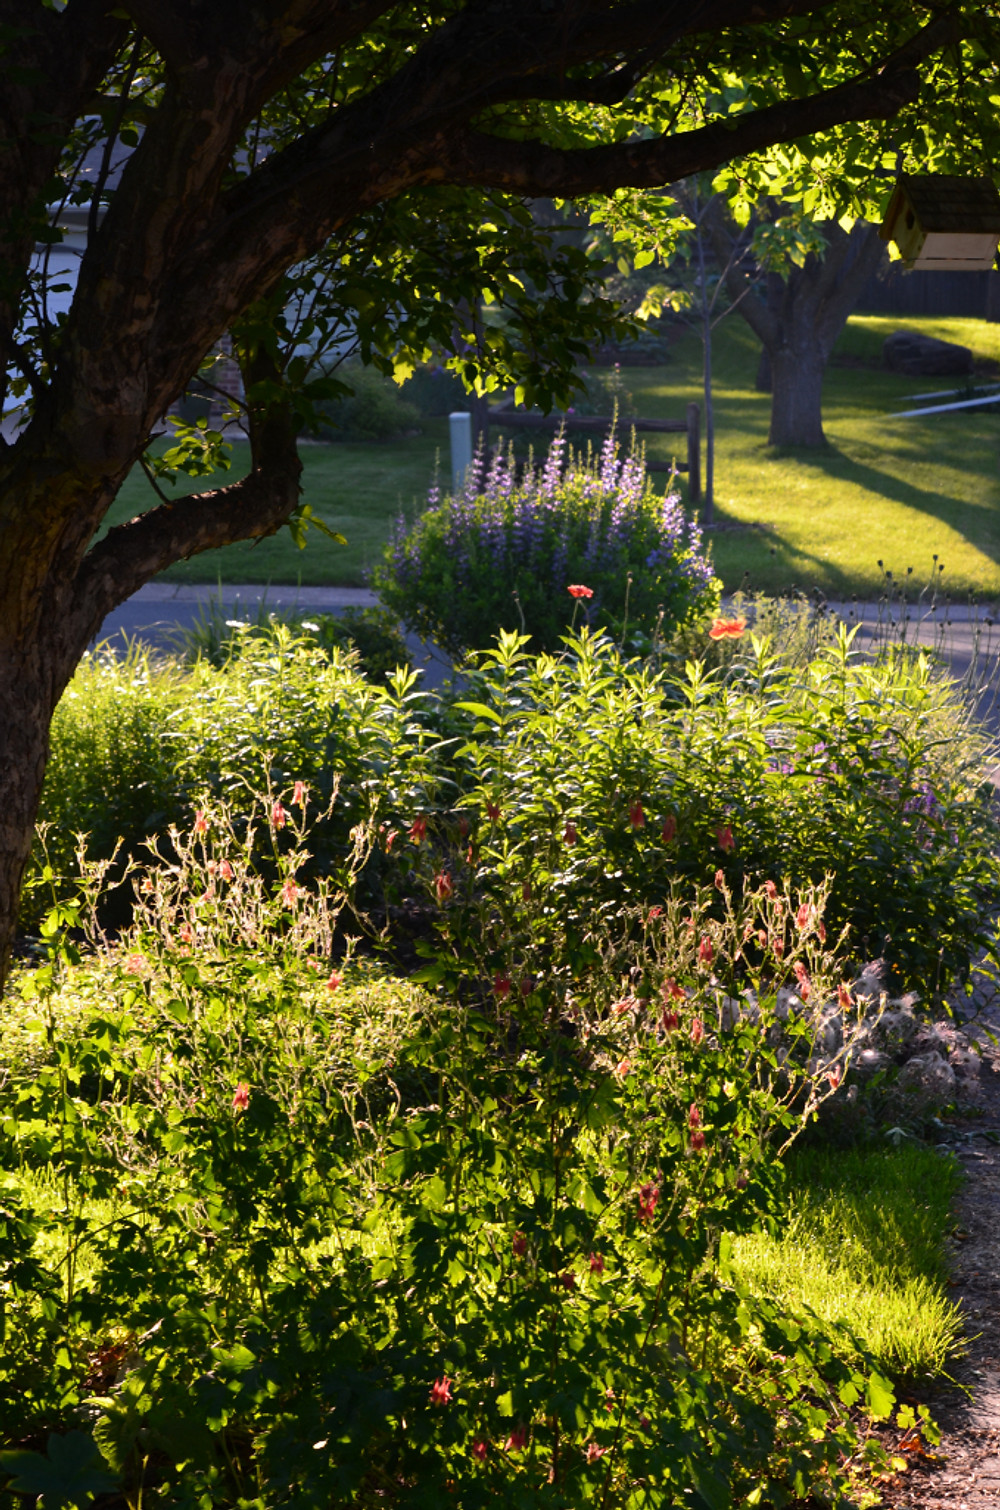 Morning sun bathes the front garden